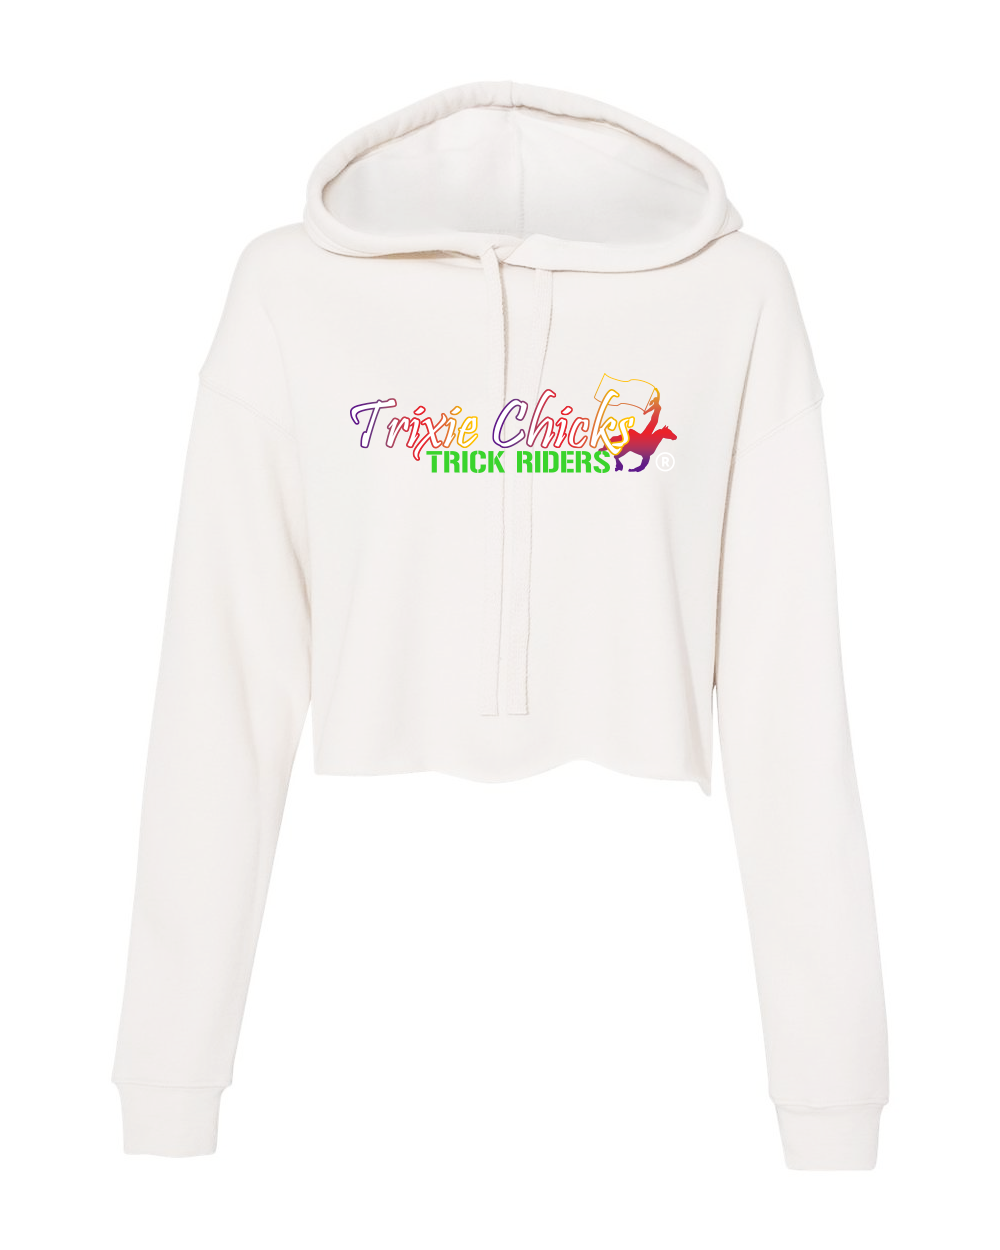 thg-trixie-chicks-cropped-hoodie_image